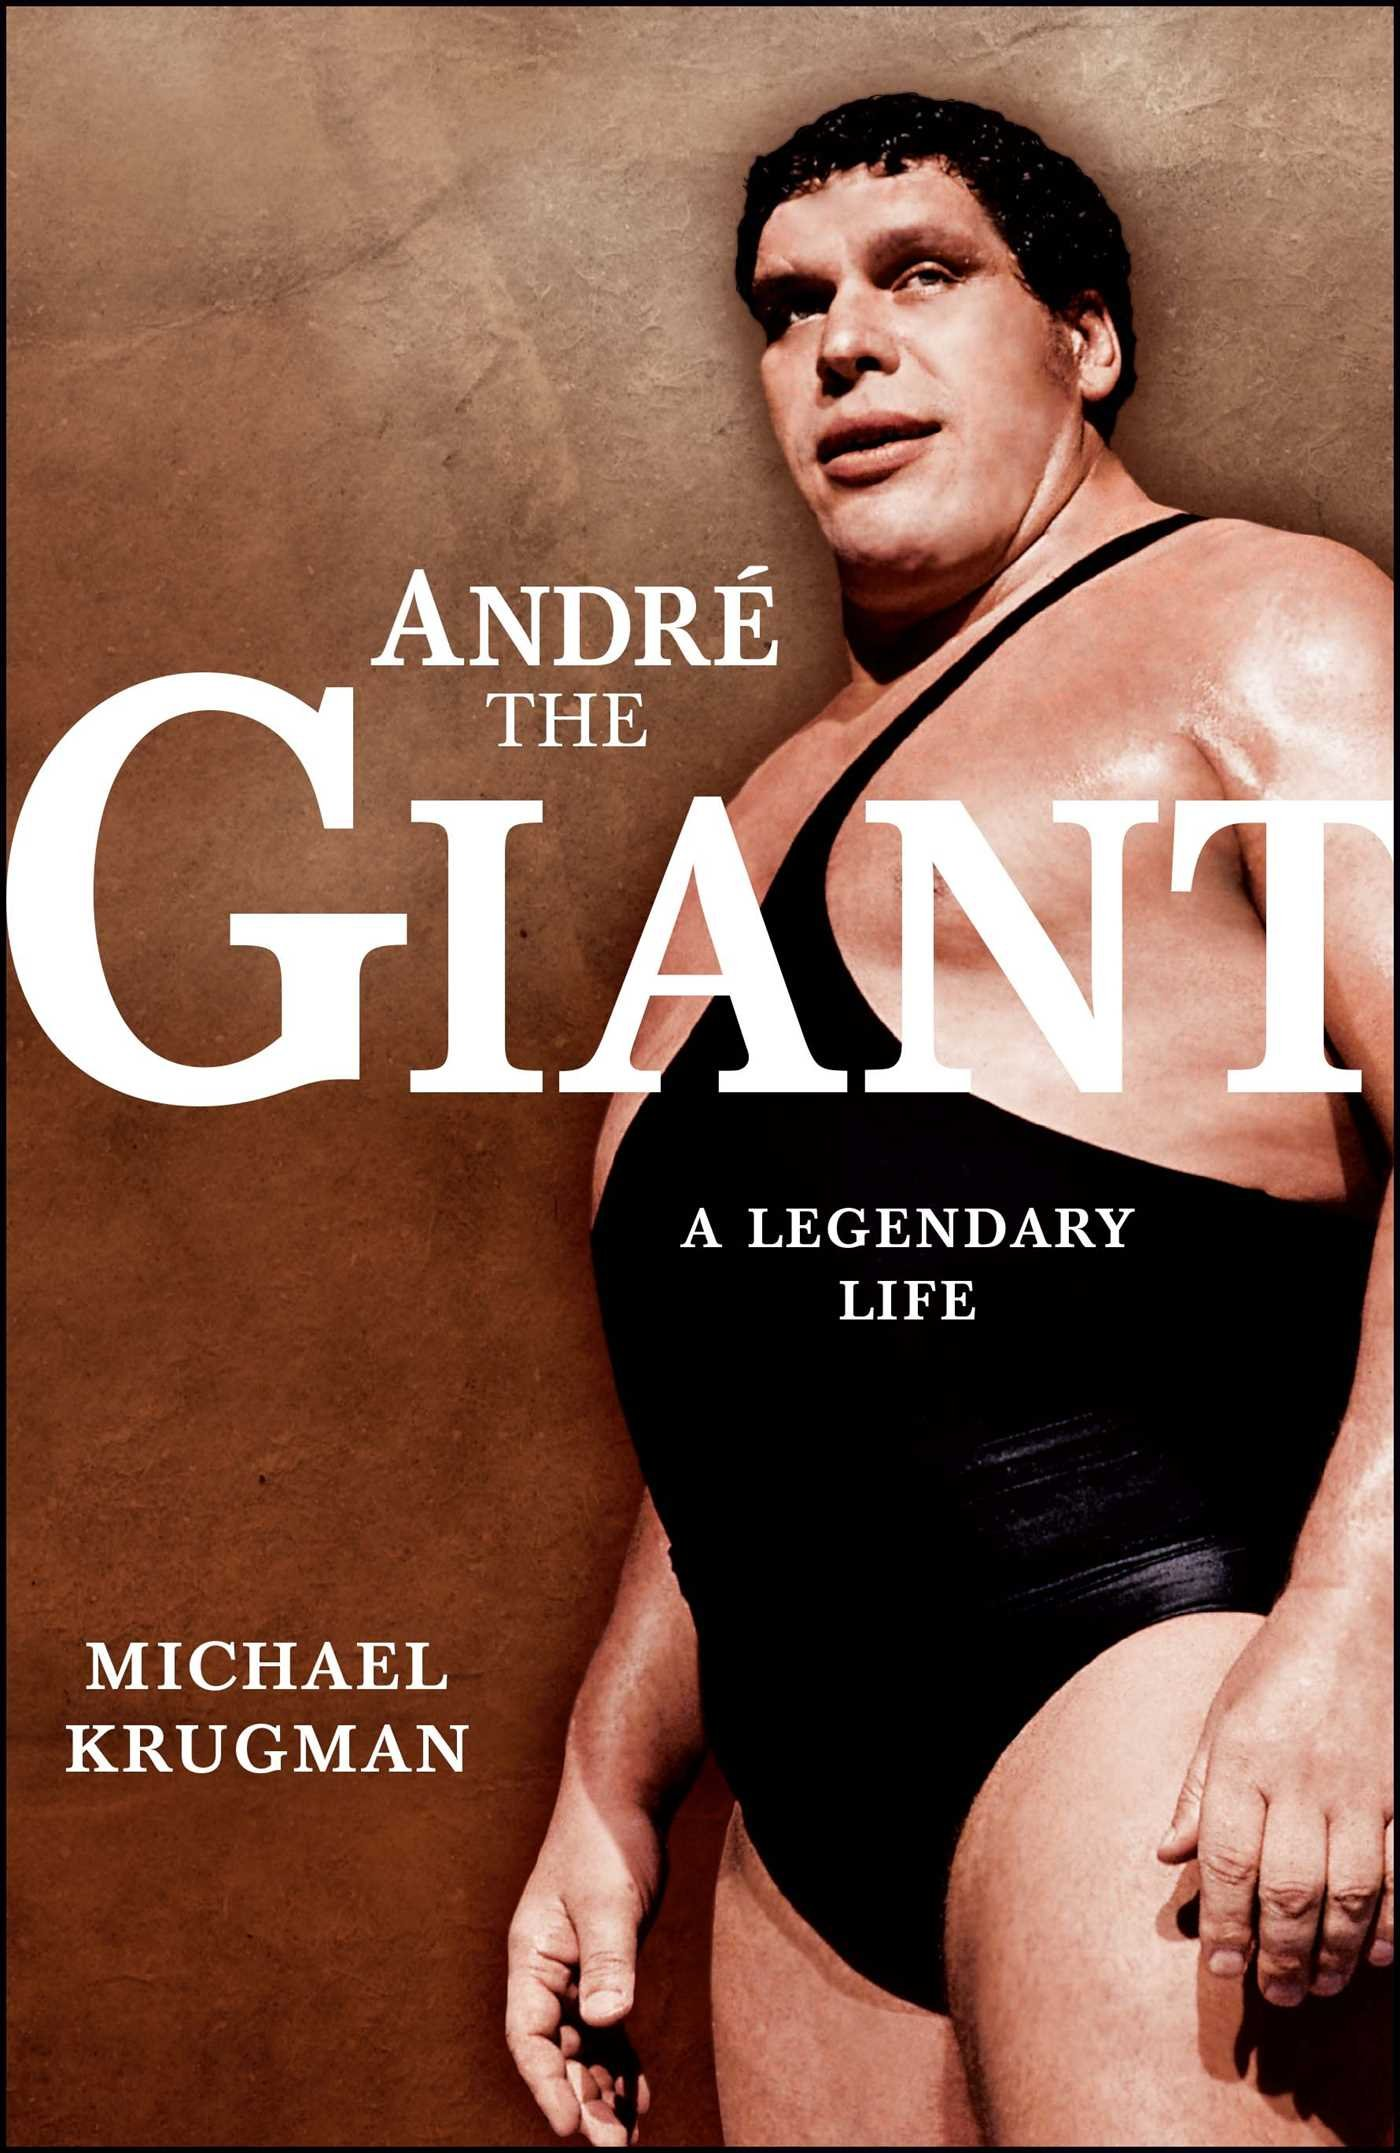 Amazon Com Andre The Giant A Legendary Life Wwe 9781416541127